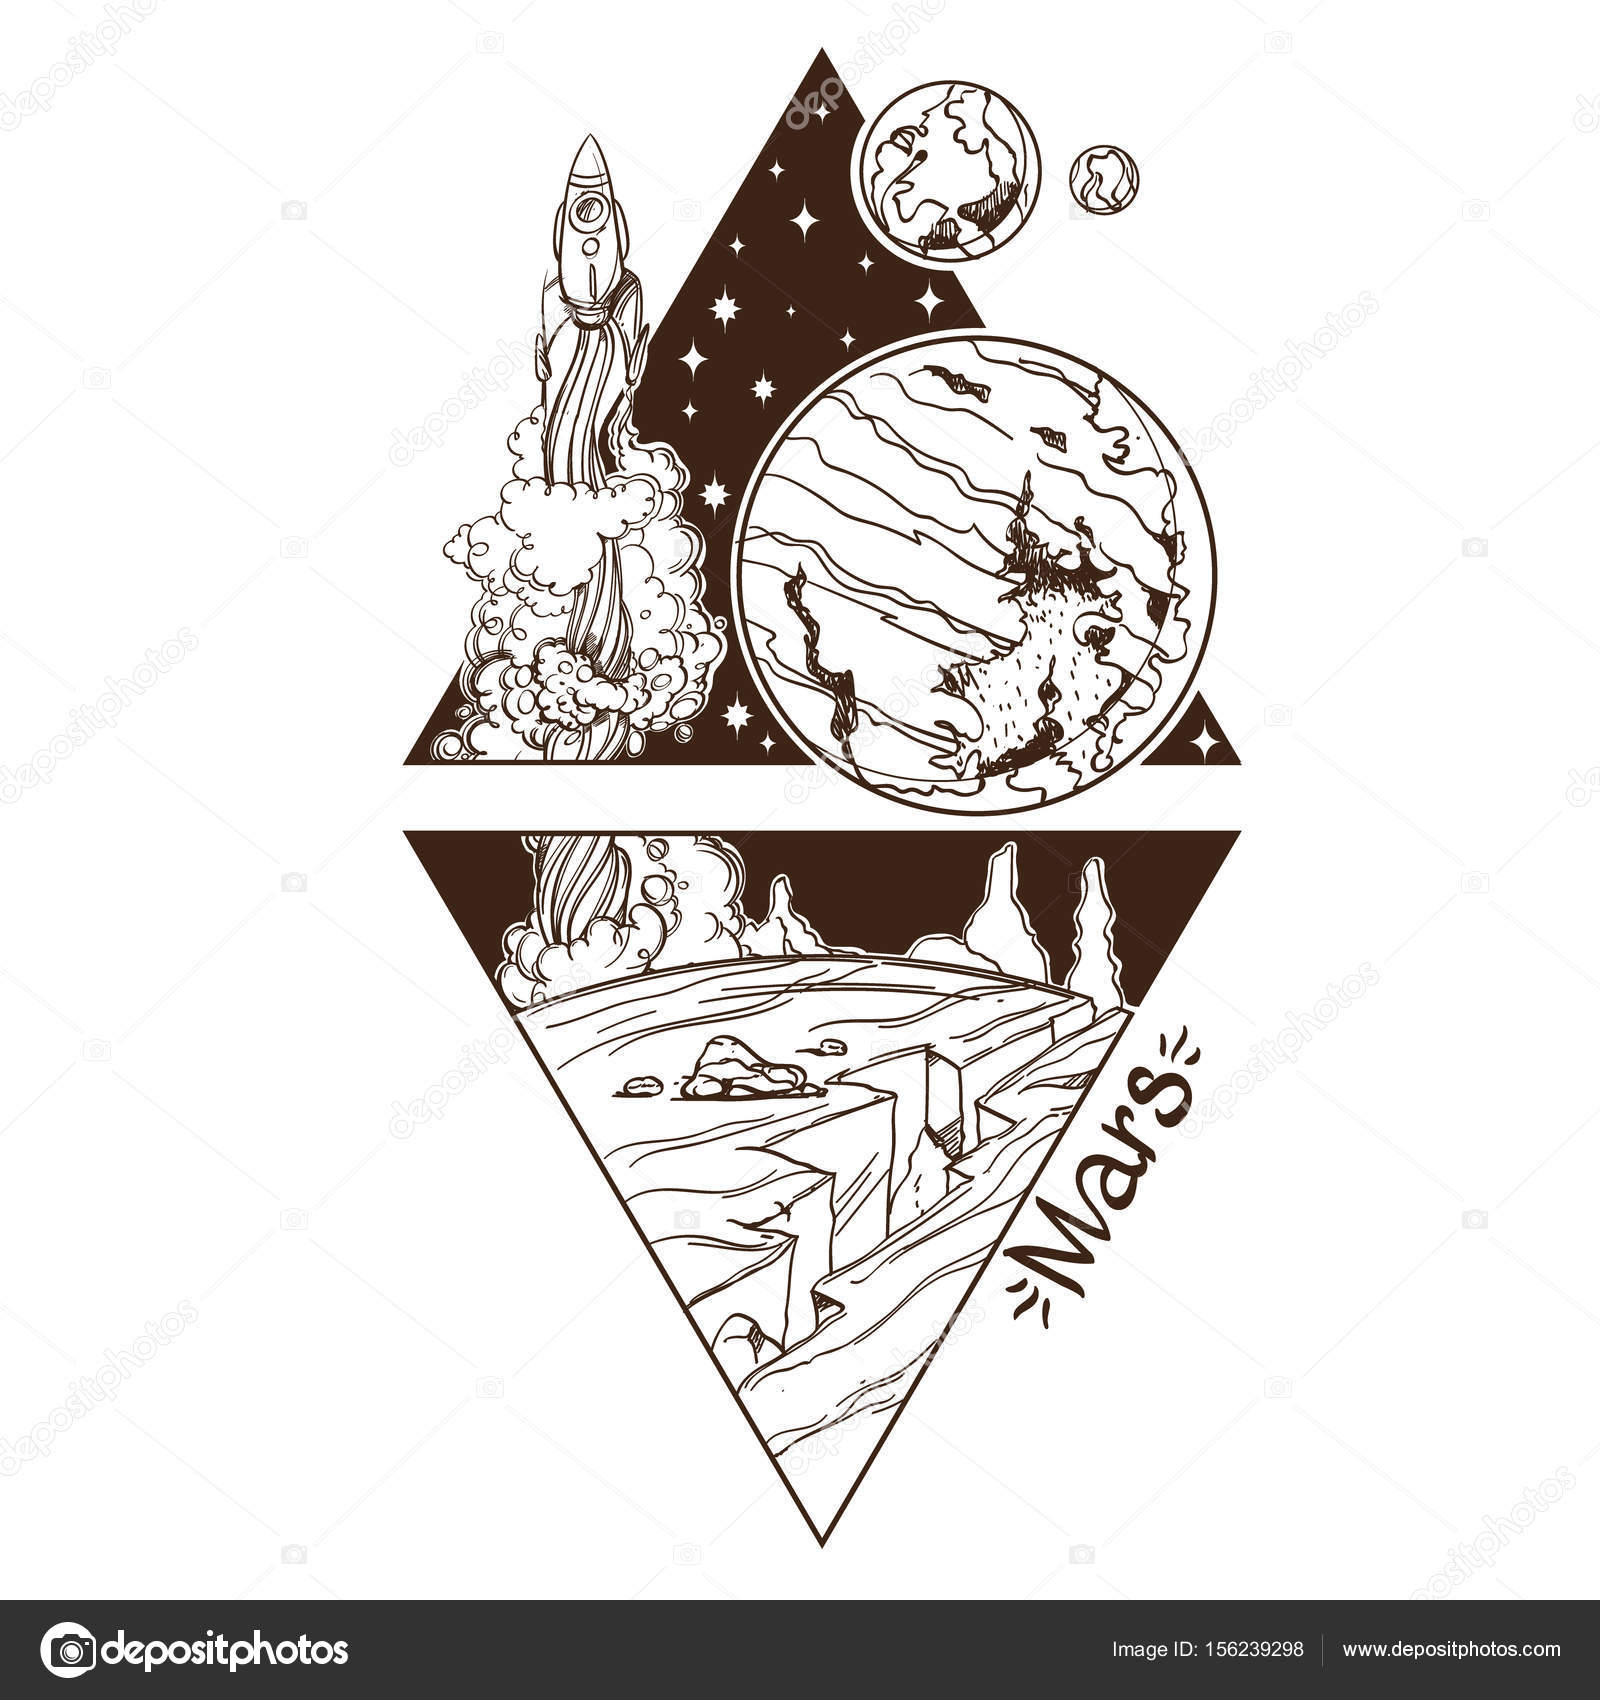 Planet of solar system stock vector filkusto 156239298 planets and stars of solar system symbols for astronomy and astrology coloring page stylized characters in the form of a triangle on a white background buycottarizona